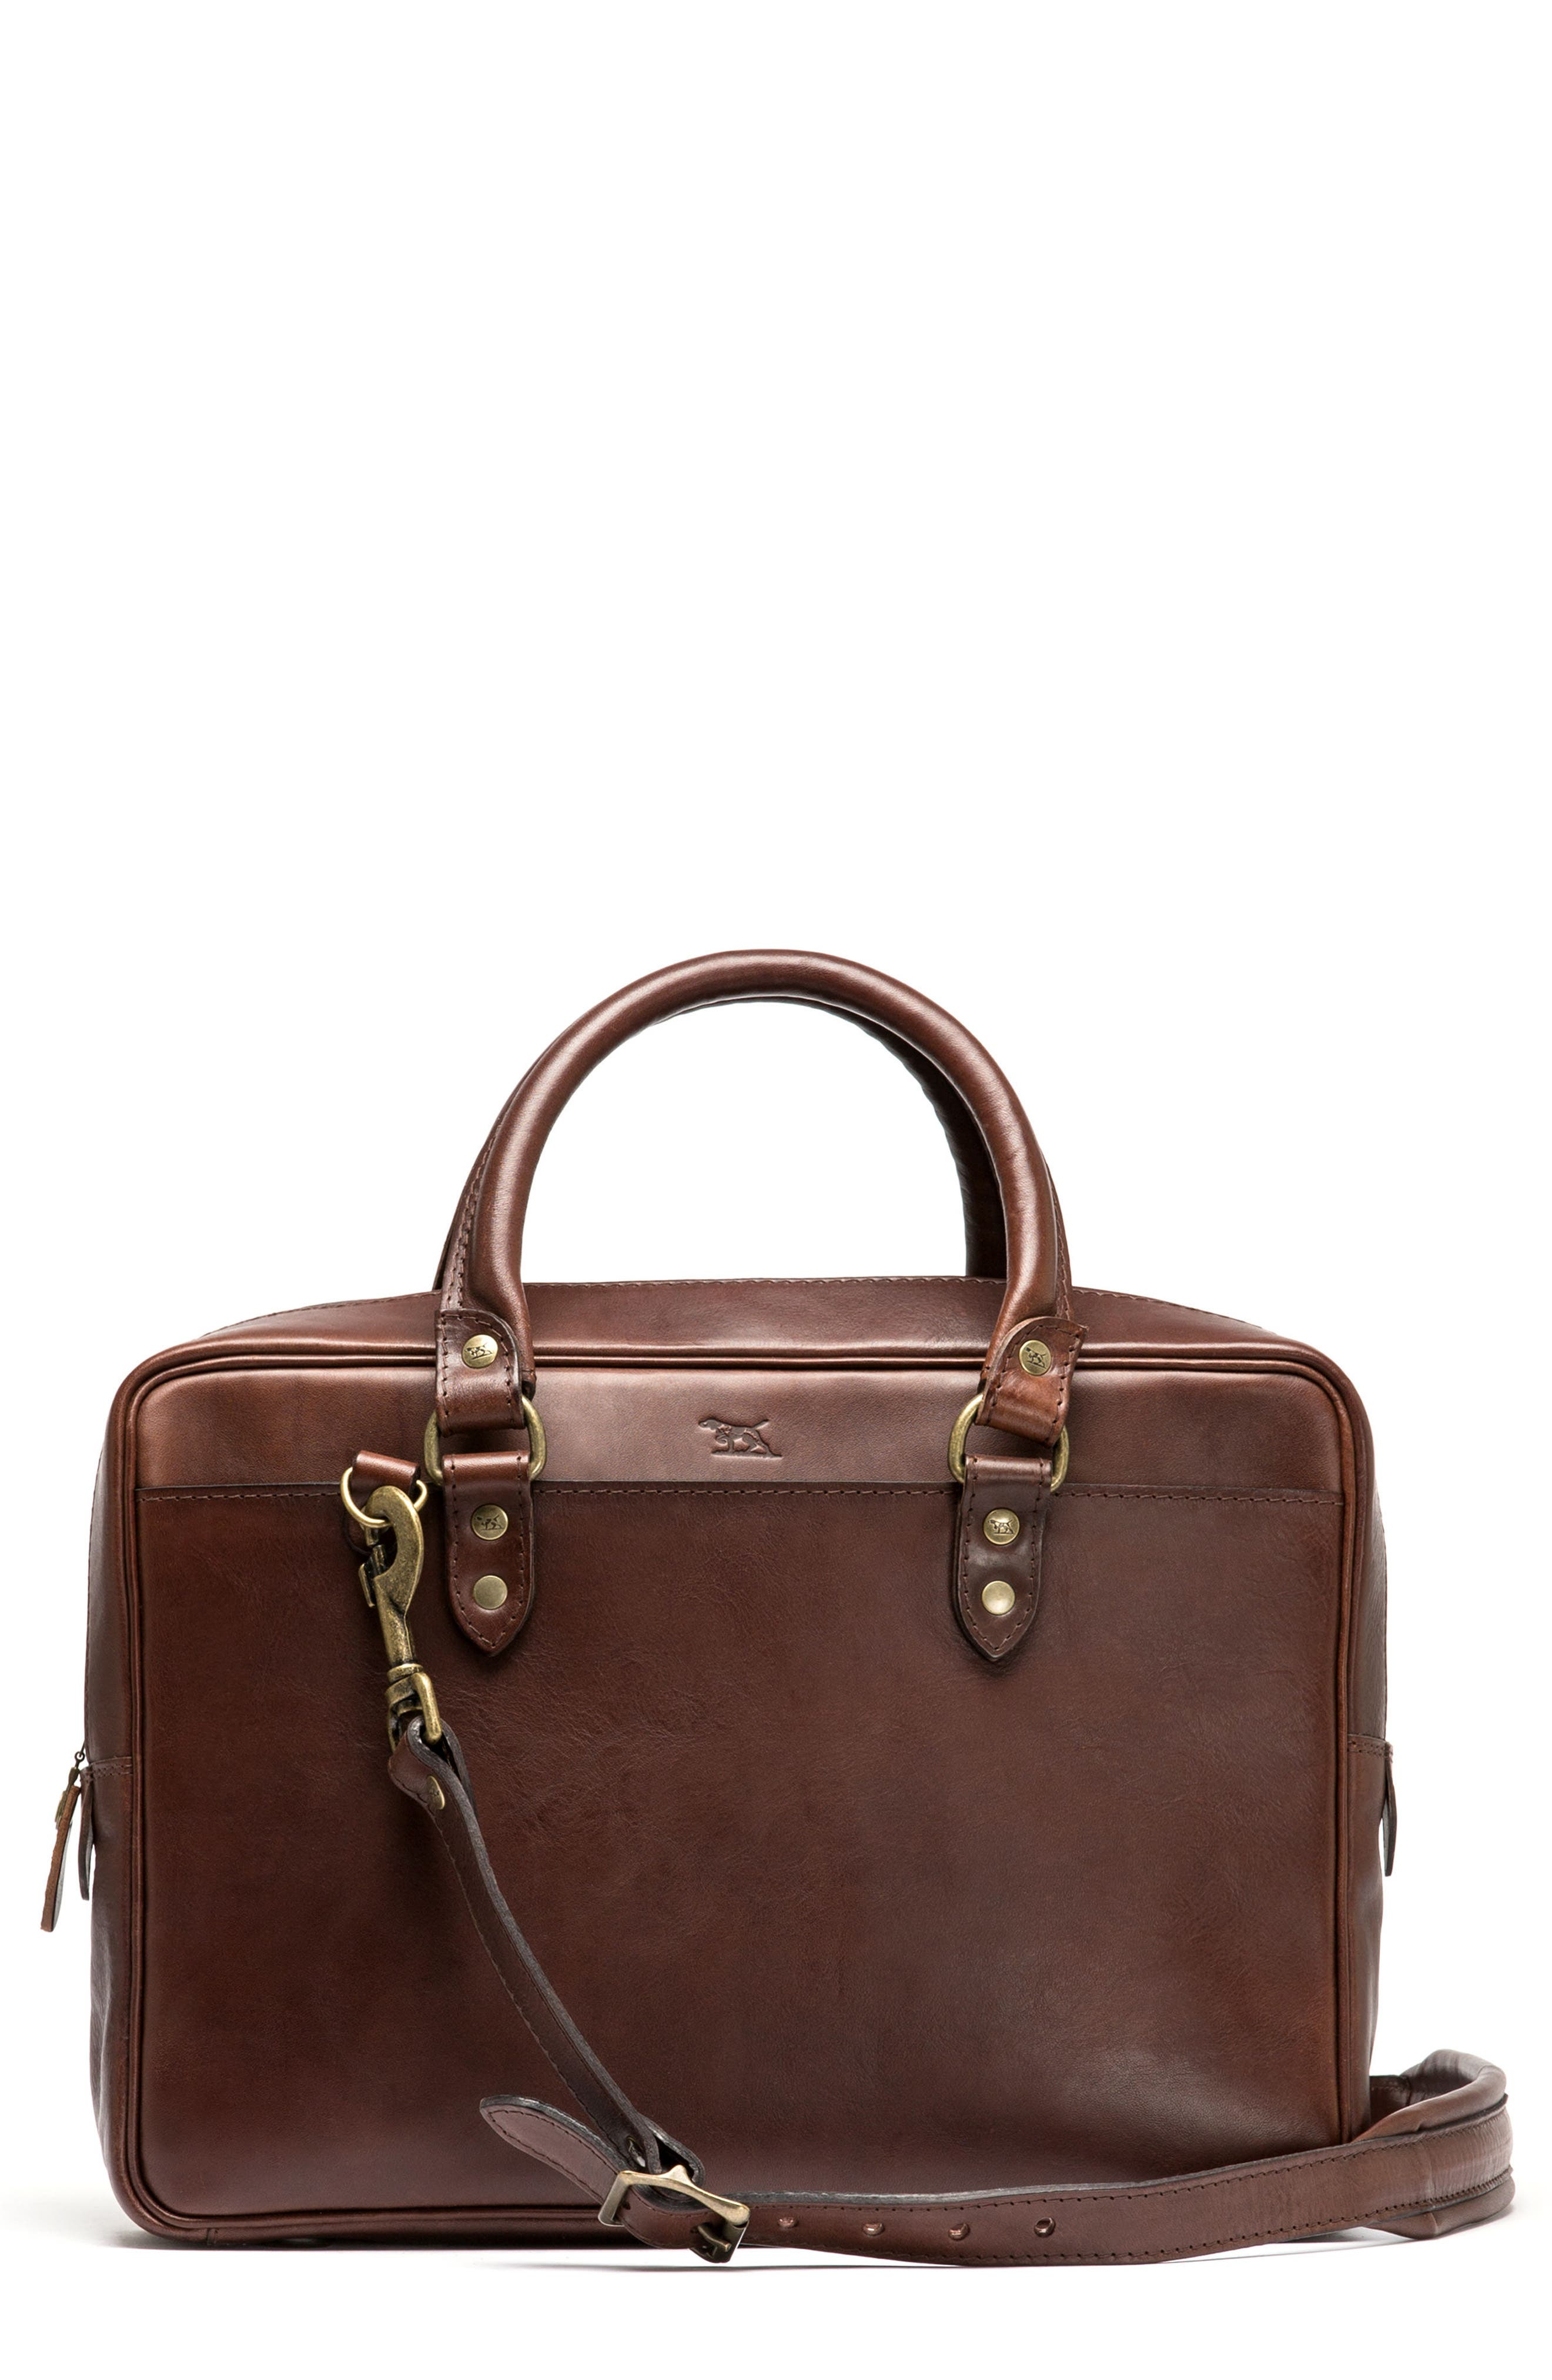 RODD & GUNN New Roxburgh Leather Briefcase